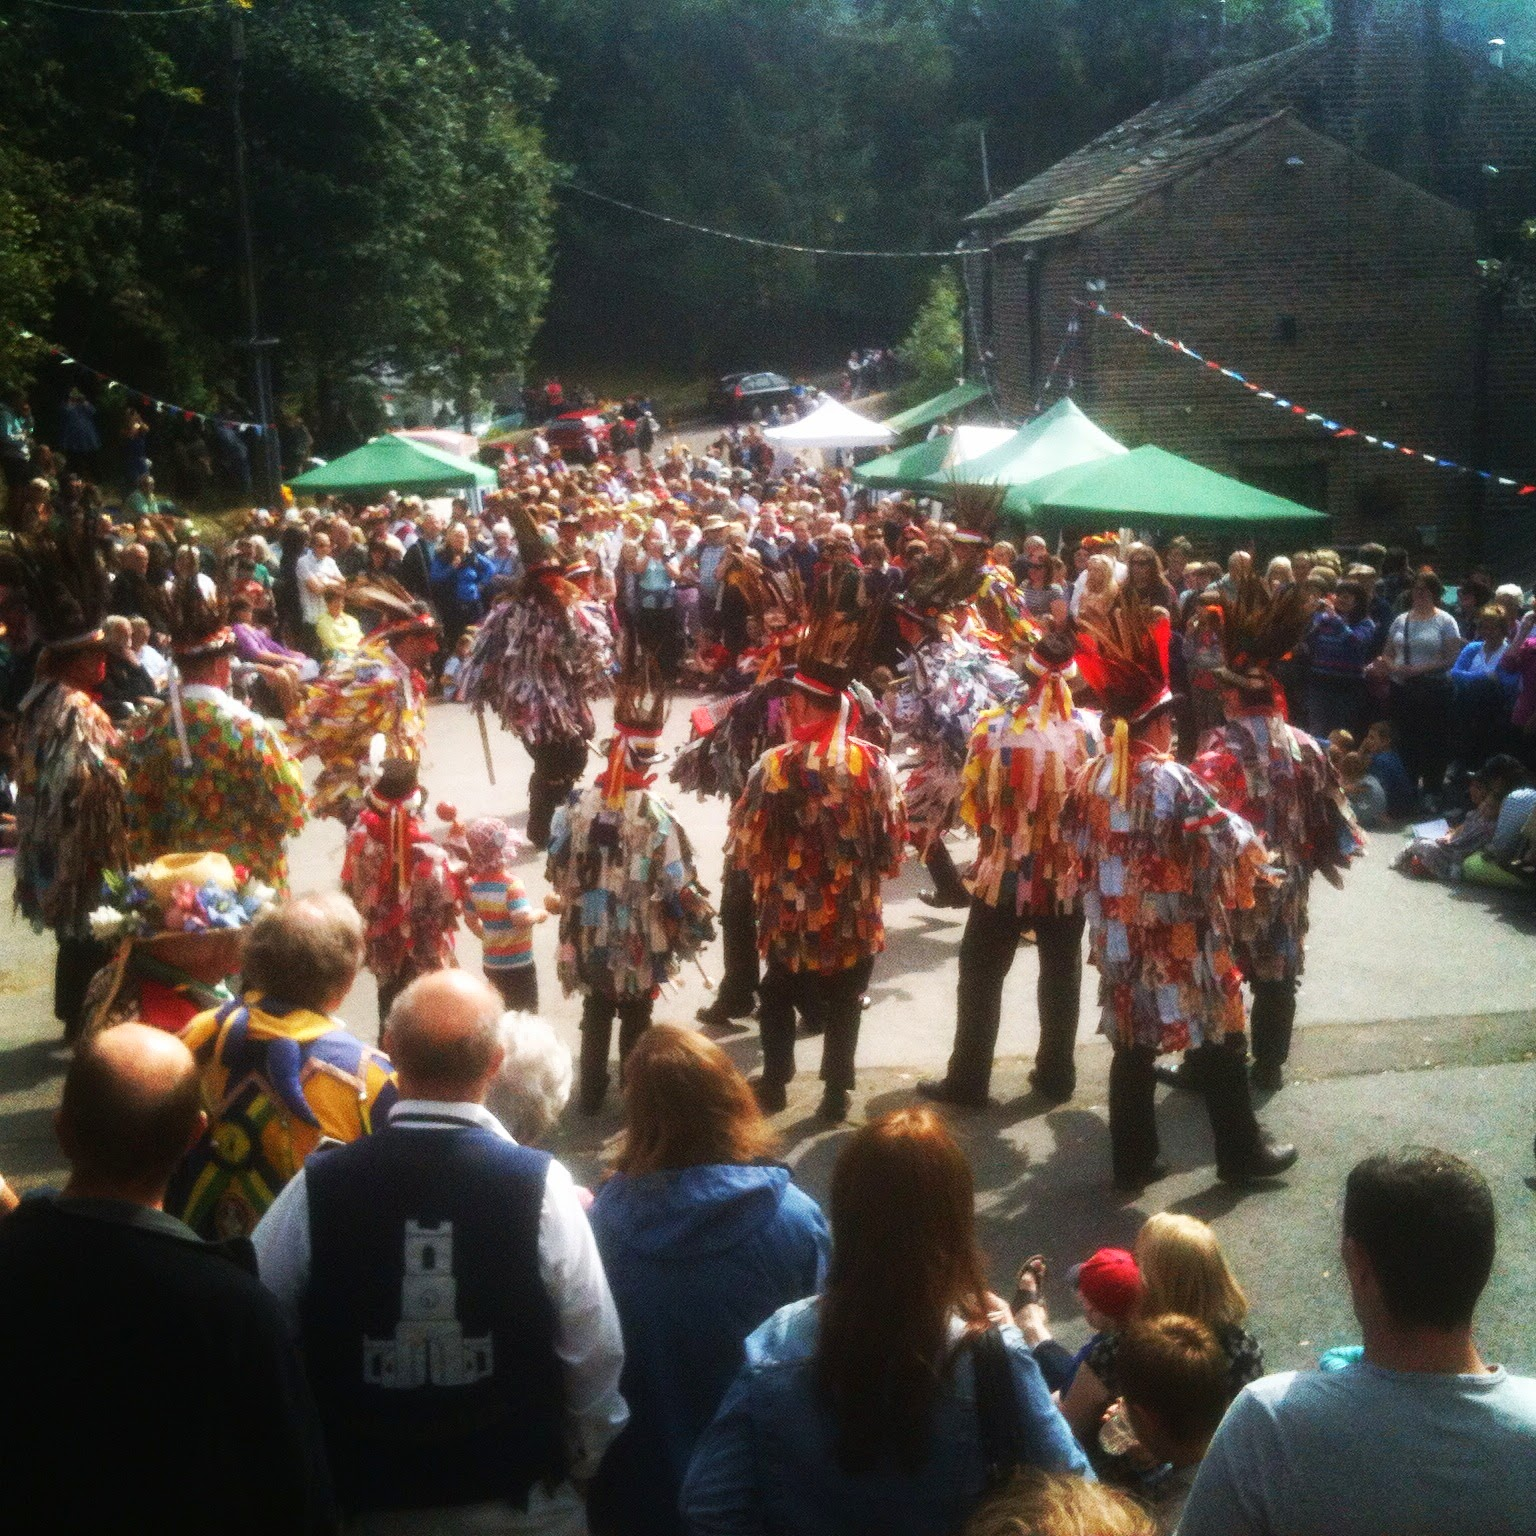 It's only Morris Dancing but I like it.